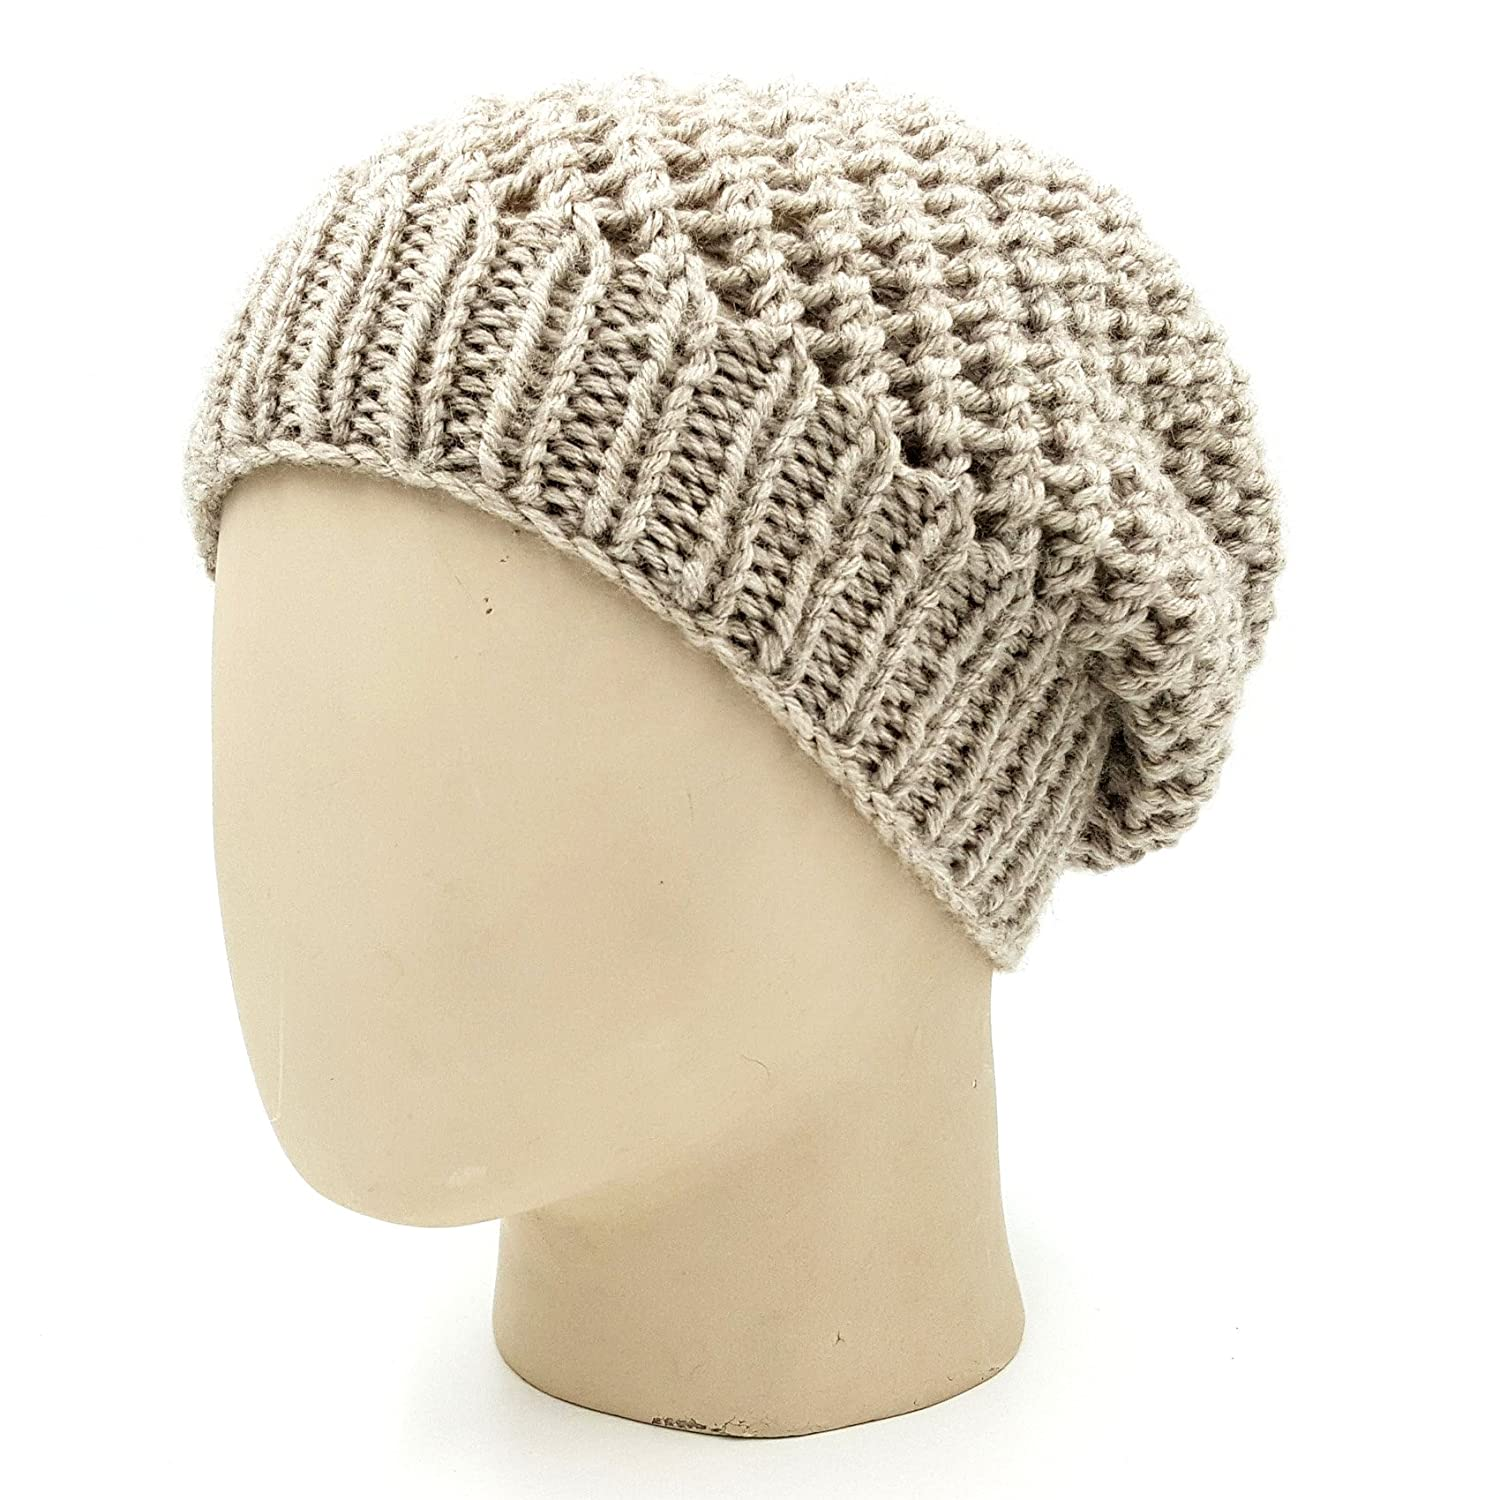 f577b92e3a0 Magic Needles Winter Woolen Cap (Handmade Mens Netted Beanie - (Beige)   Amazon.in  Clothing   Accessories